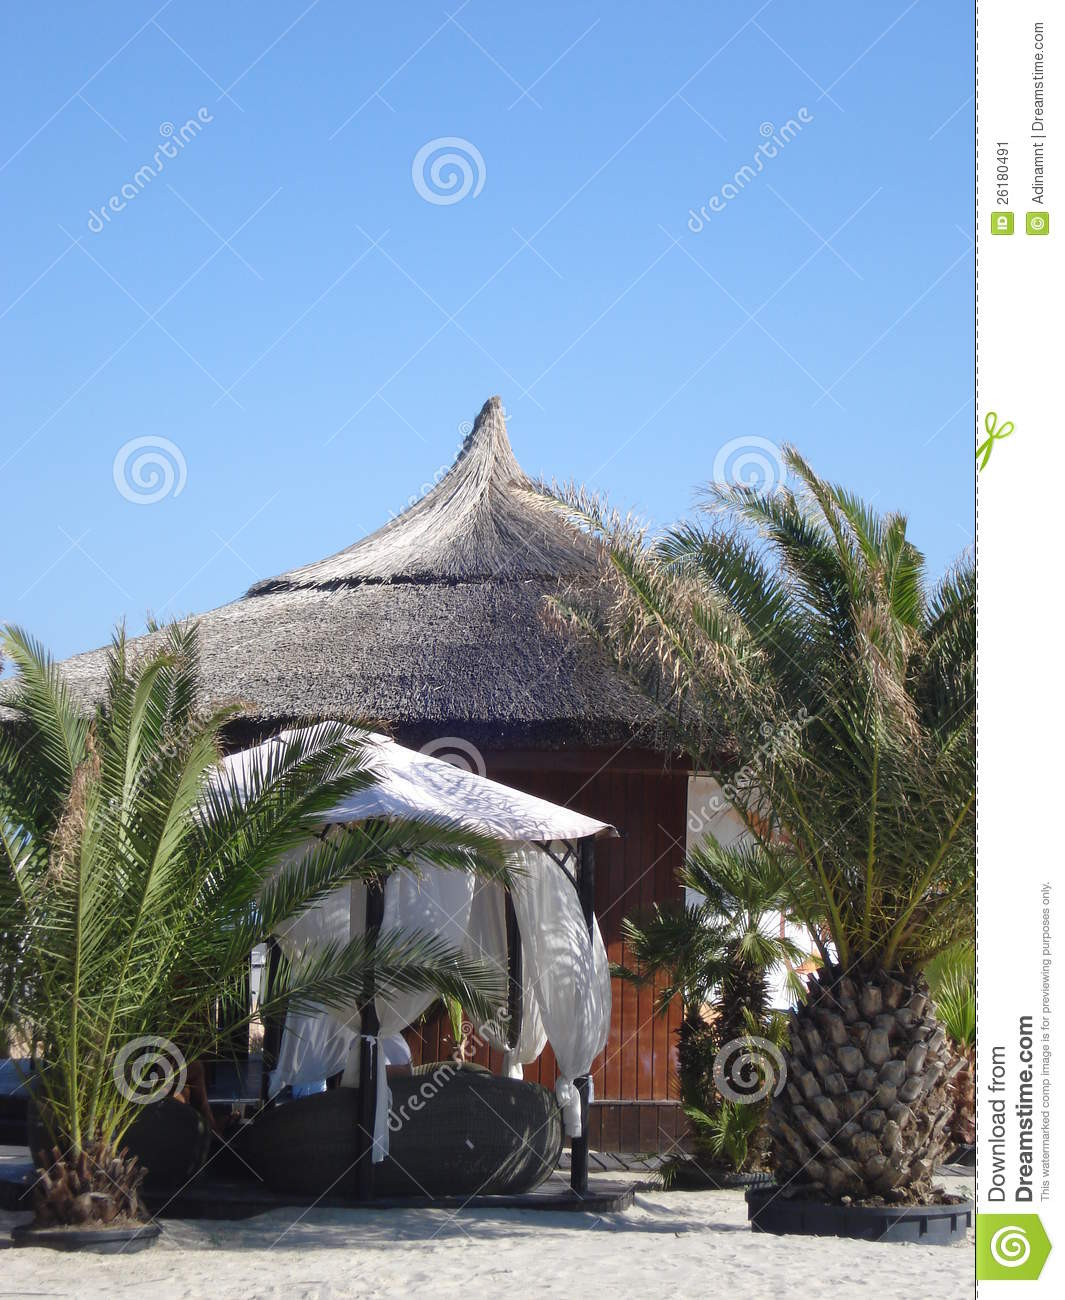 Mamaia Holidays: Thatched Hut On The Beach Stock Image